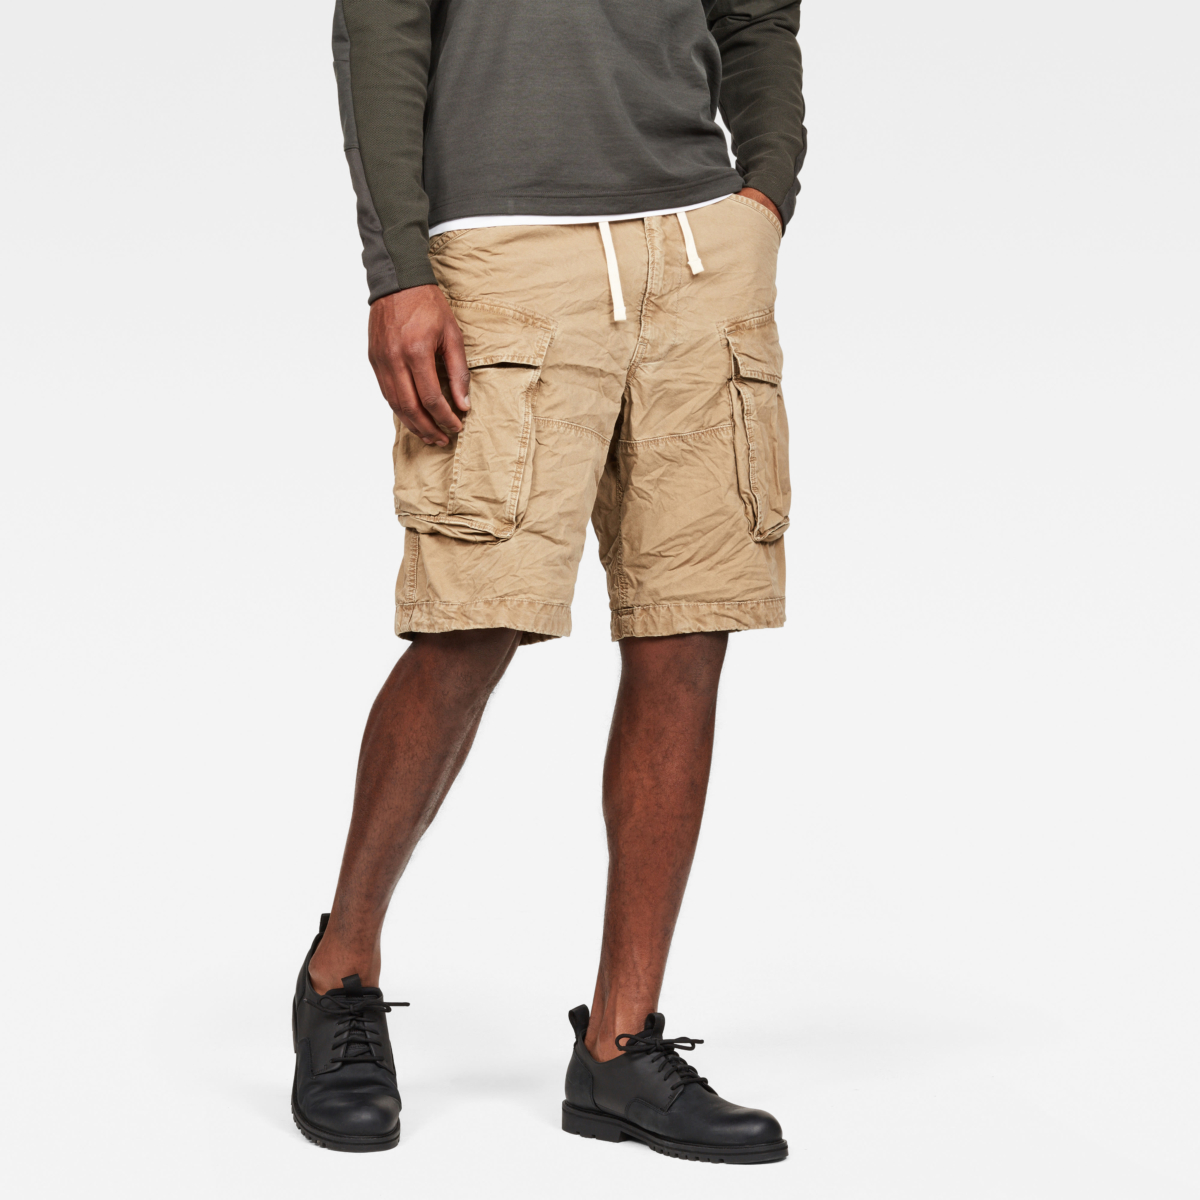 G-Star Shorts Rovic X-Relaxed Trainer Short Brown Male Canada - GOOFASH - Mens SHORTS